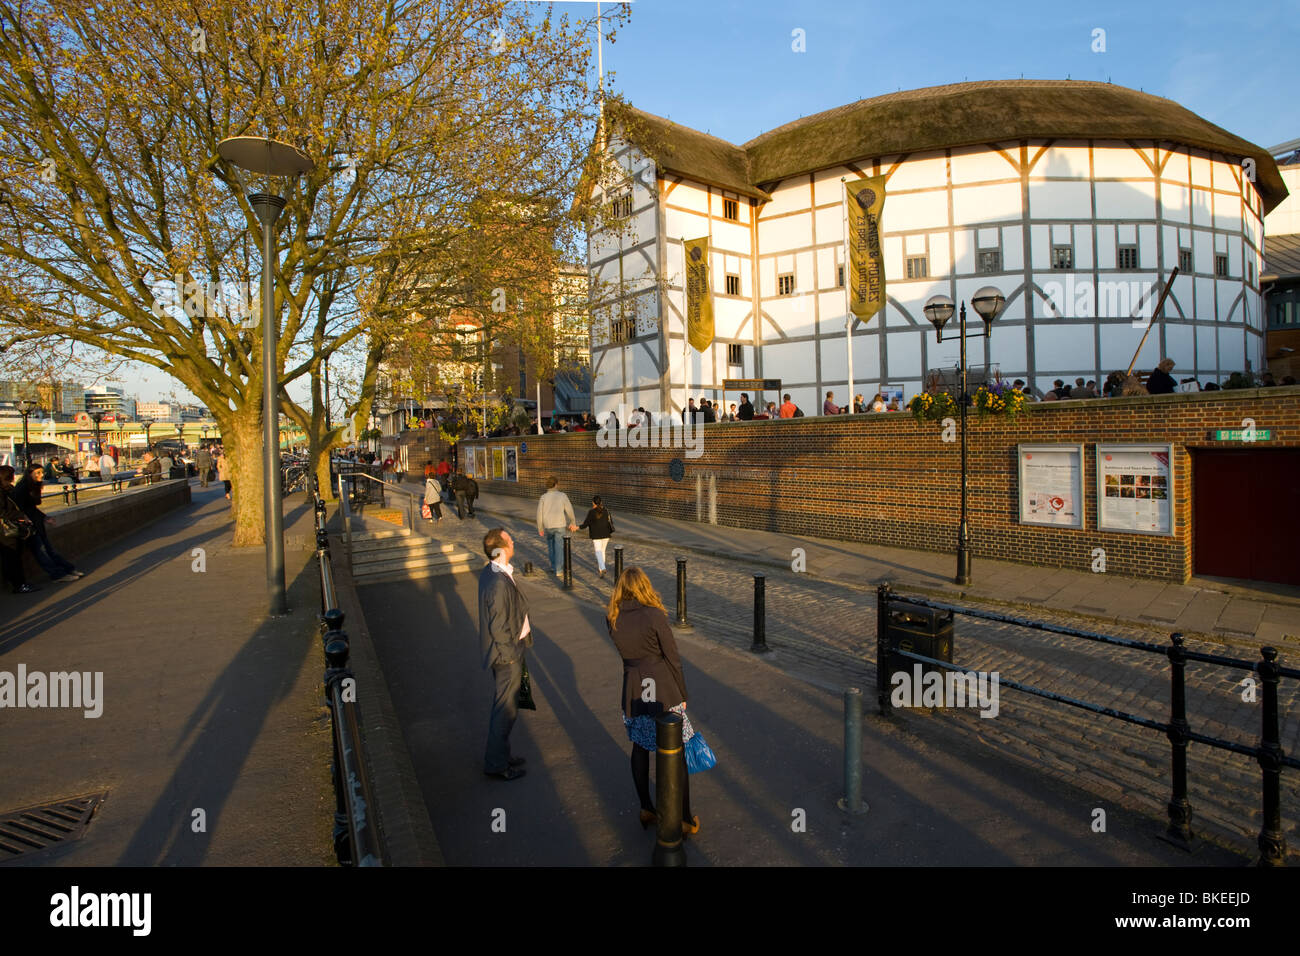 The Globe Theatre. On the banks of the River Thames, London, England, UK. - Stock Image